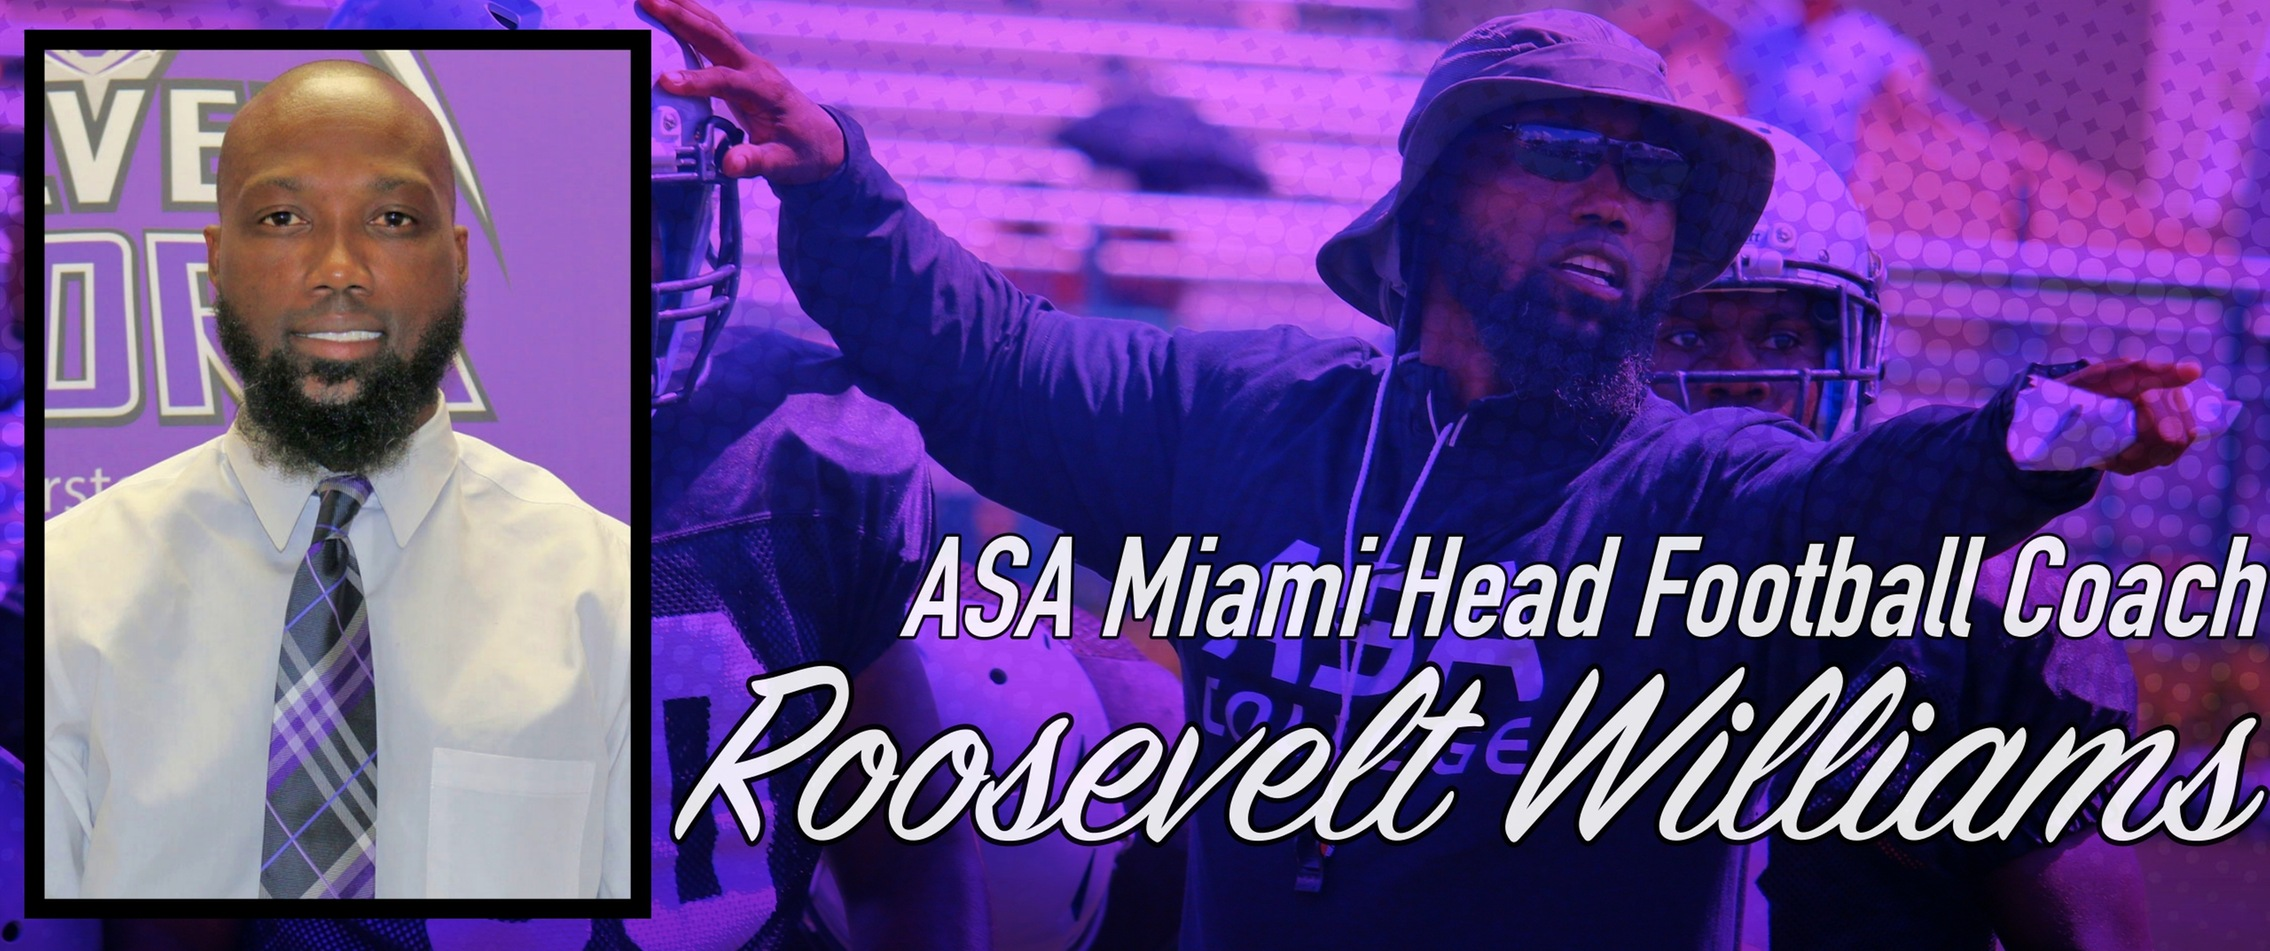 Roosevelt Williams Promoted To Head Football Coach